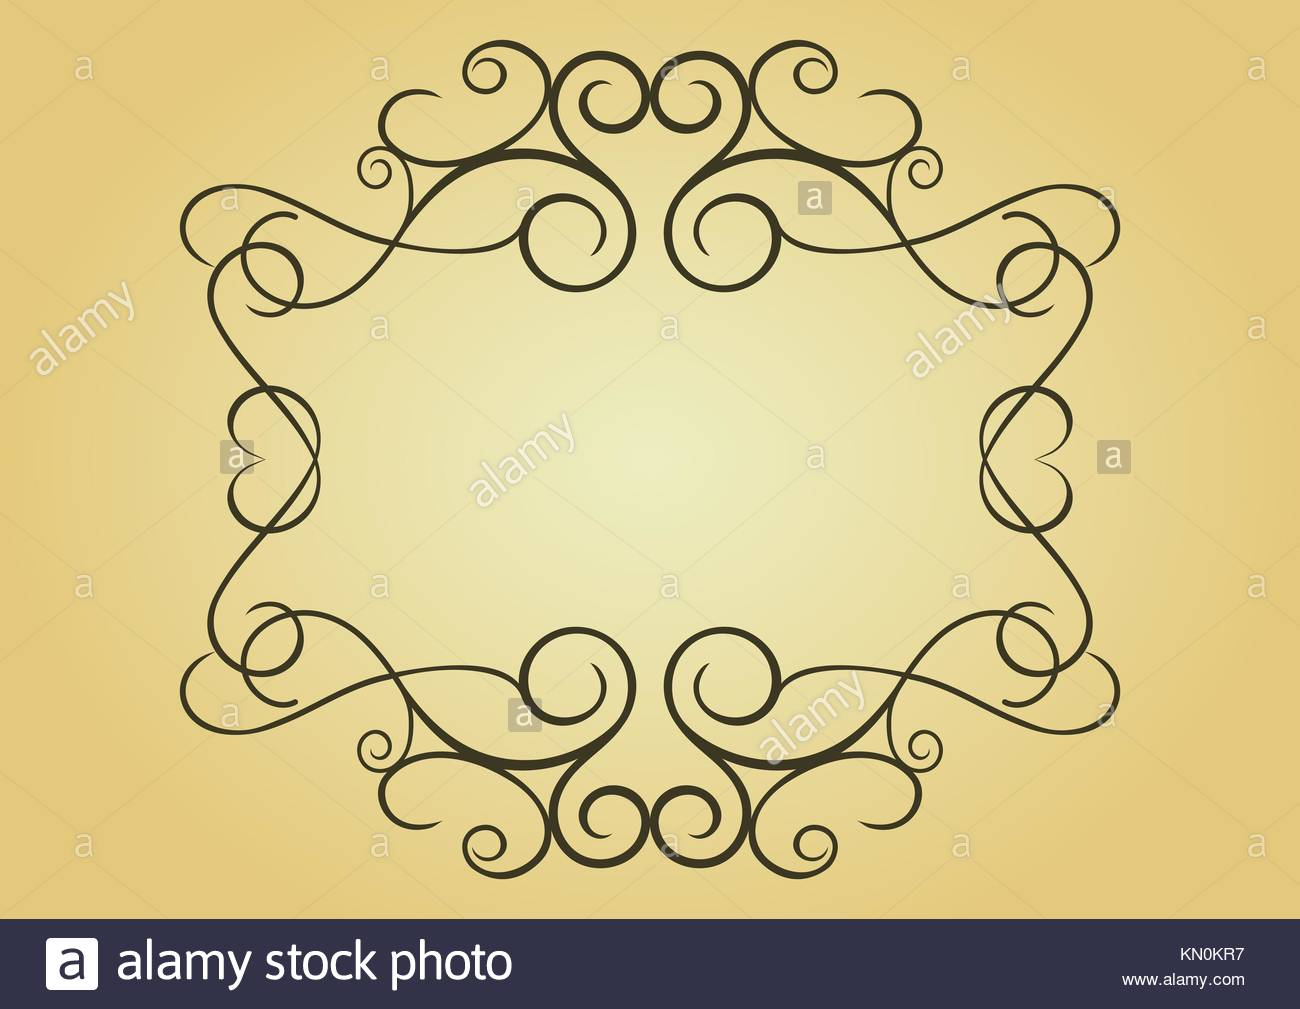 Swirl vintage frame for design as a background - Stock Image